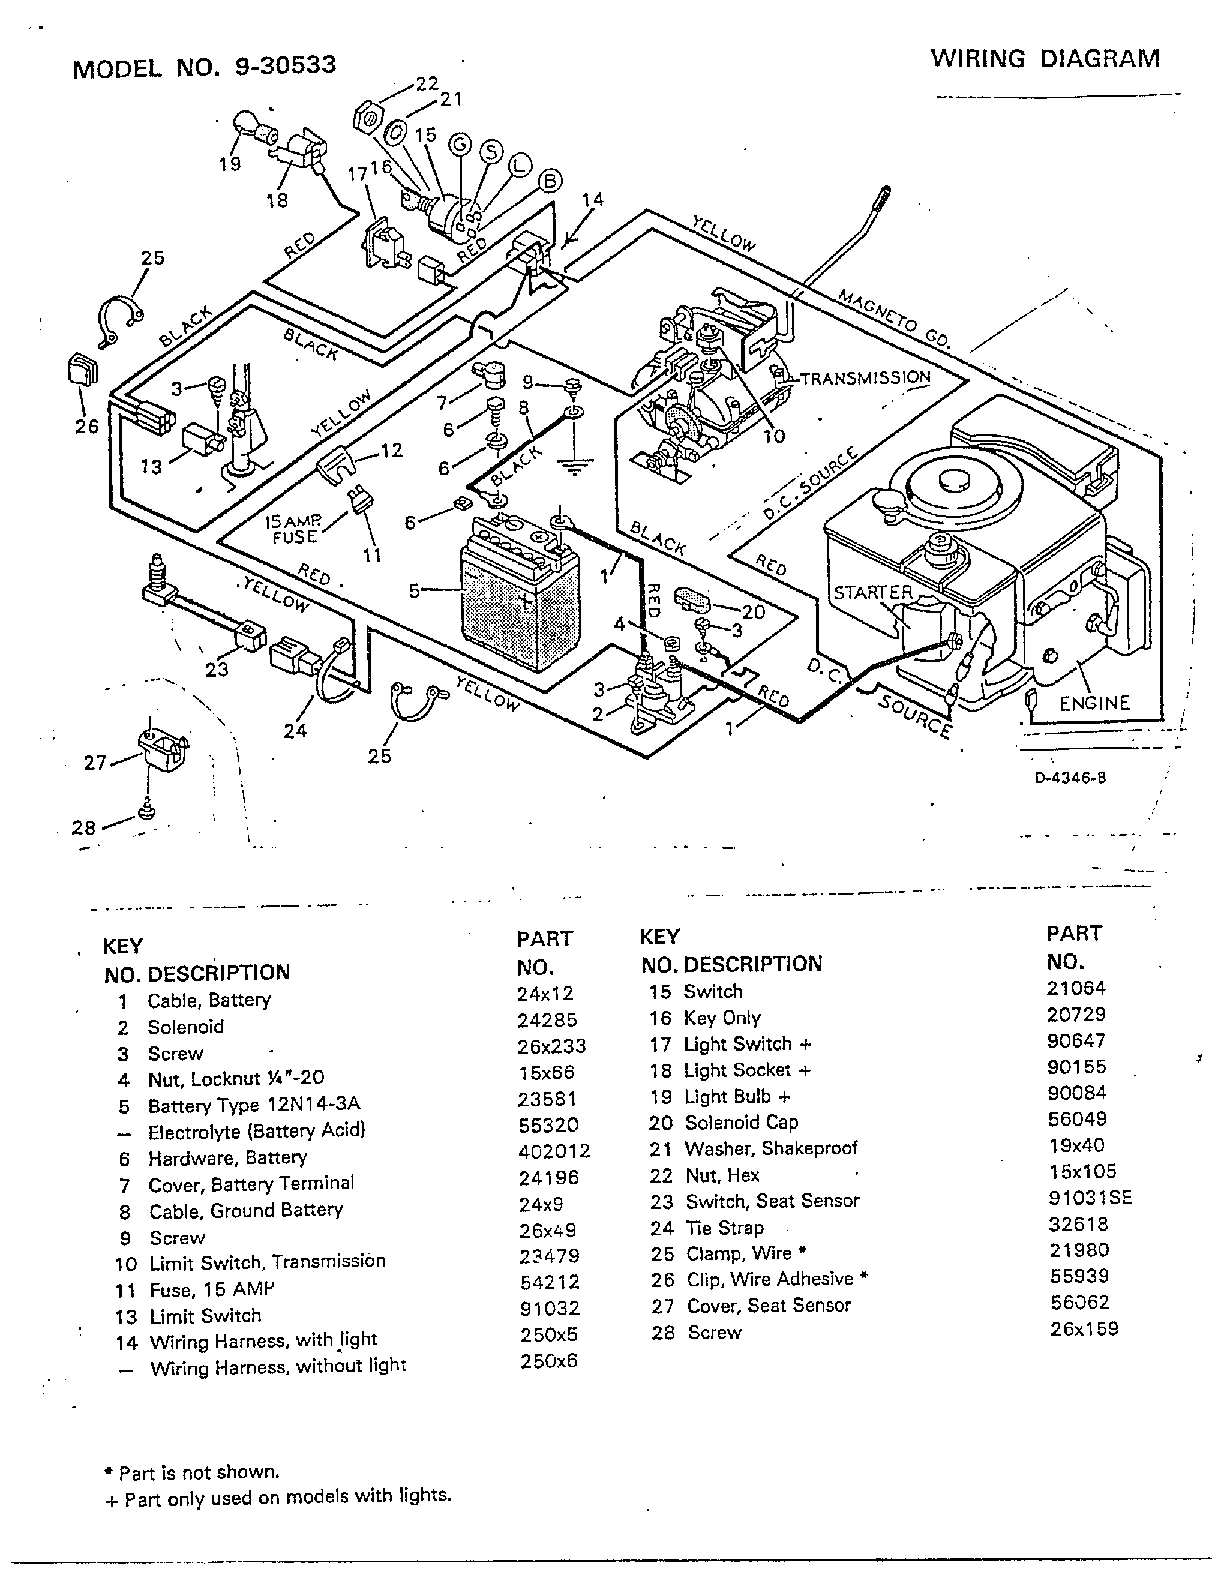 murray 42544x8c ignition wiring diagram murray riding mower wiring diagram a3 wiring diagram  murray riding mower wiring diagram a3